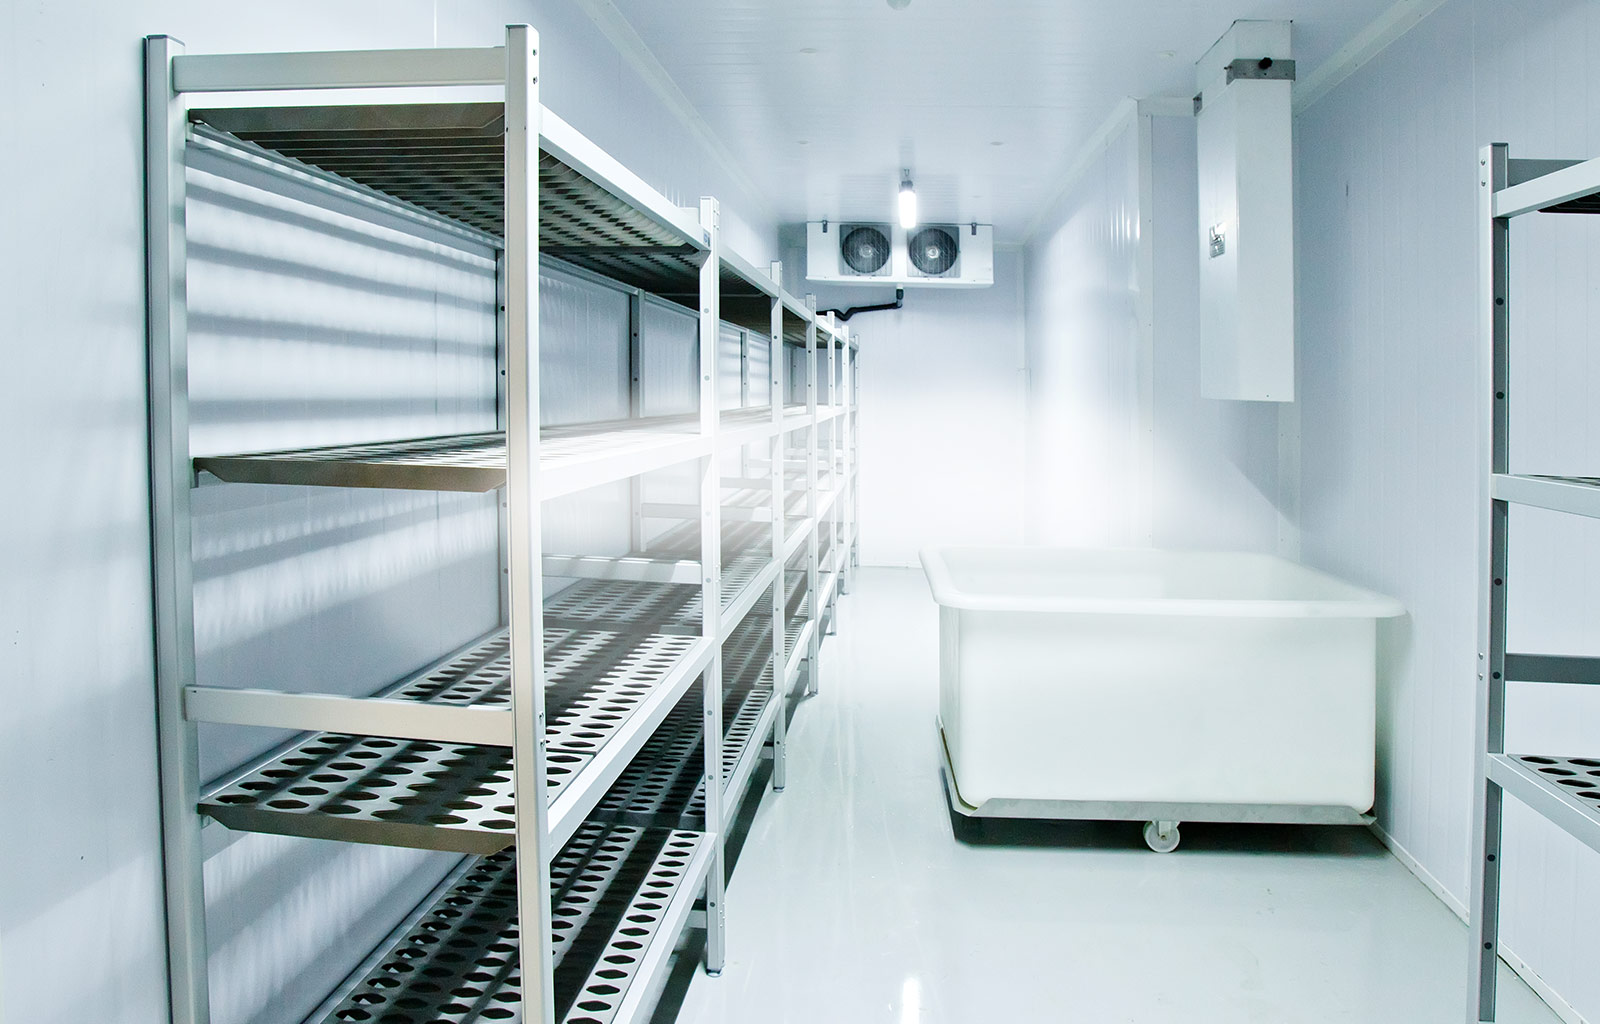 Walk in Cooler and Refrigeration Repair